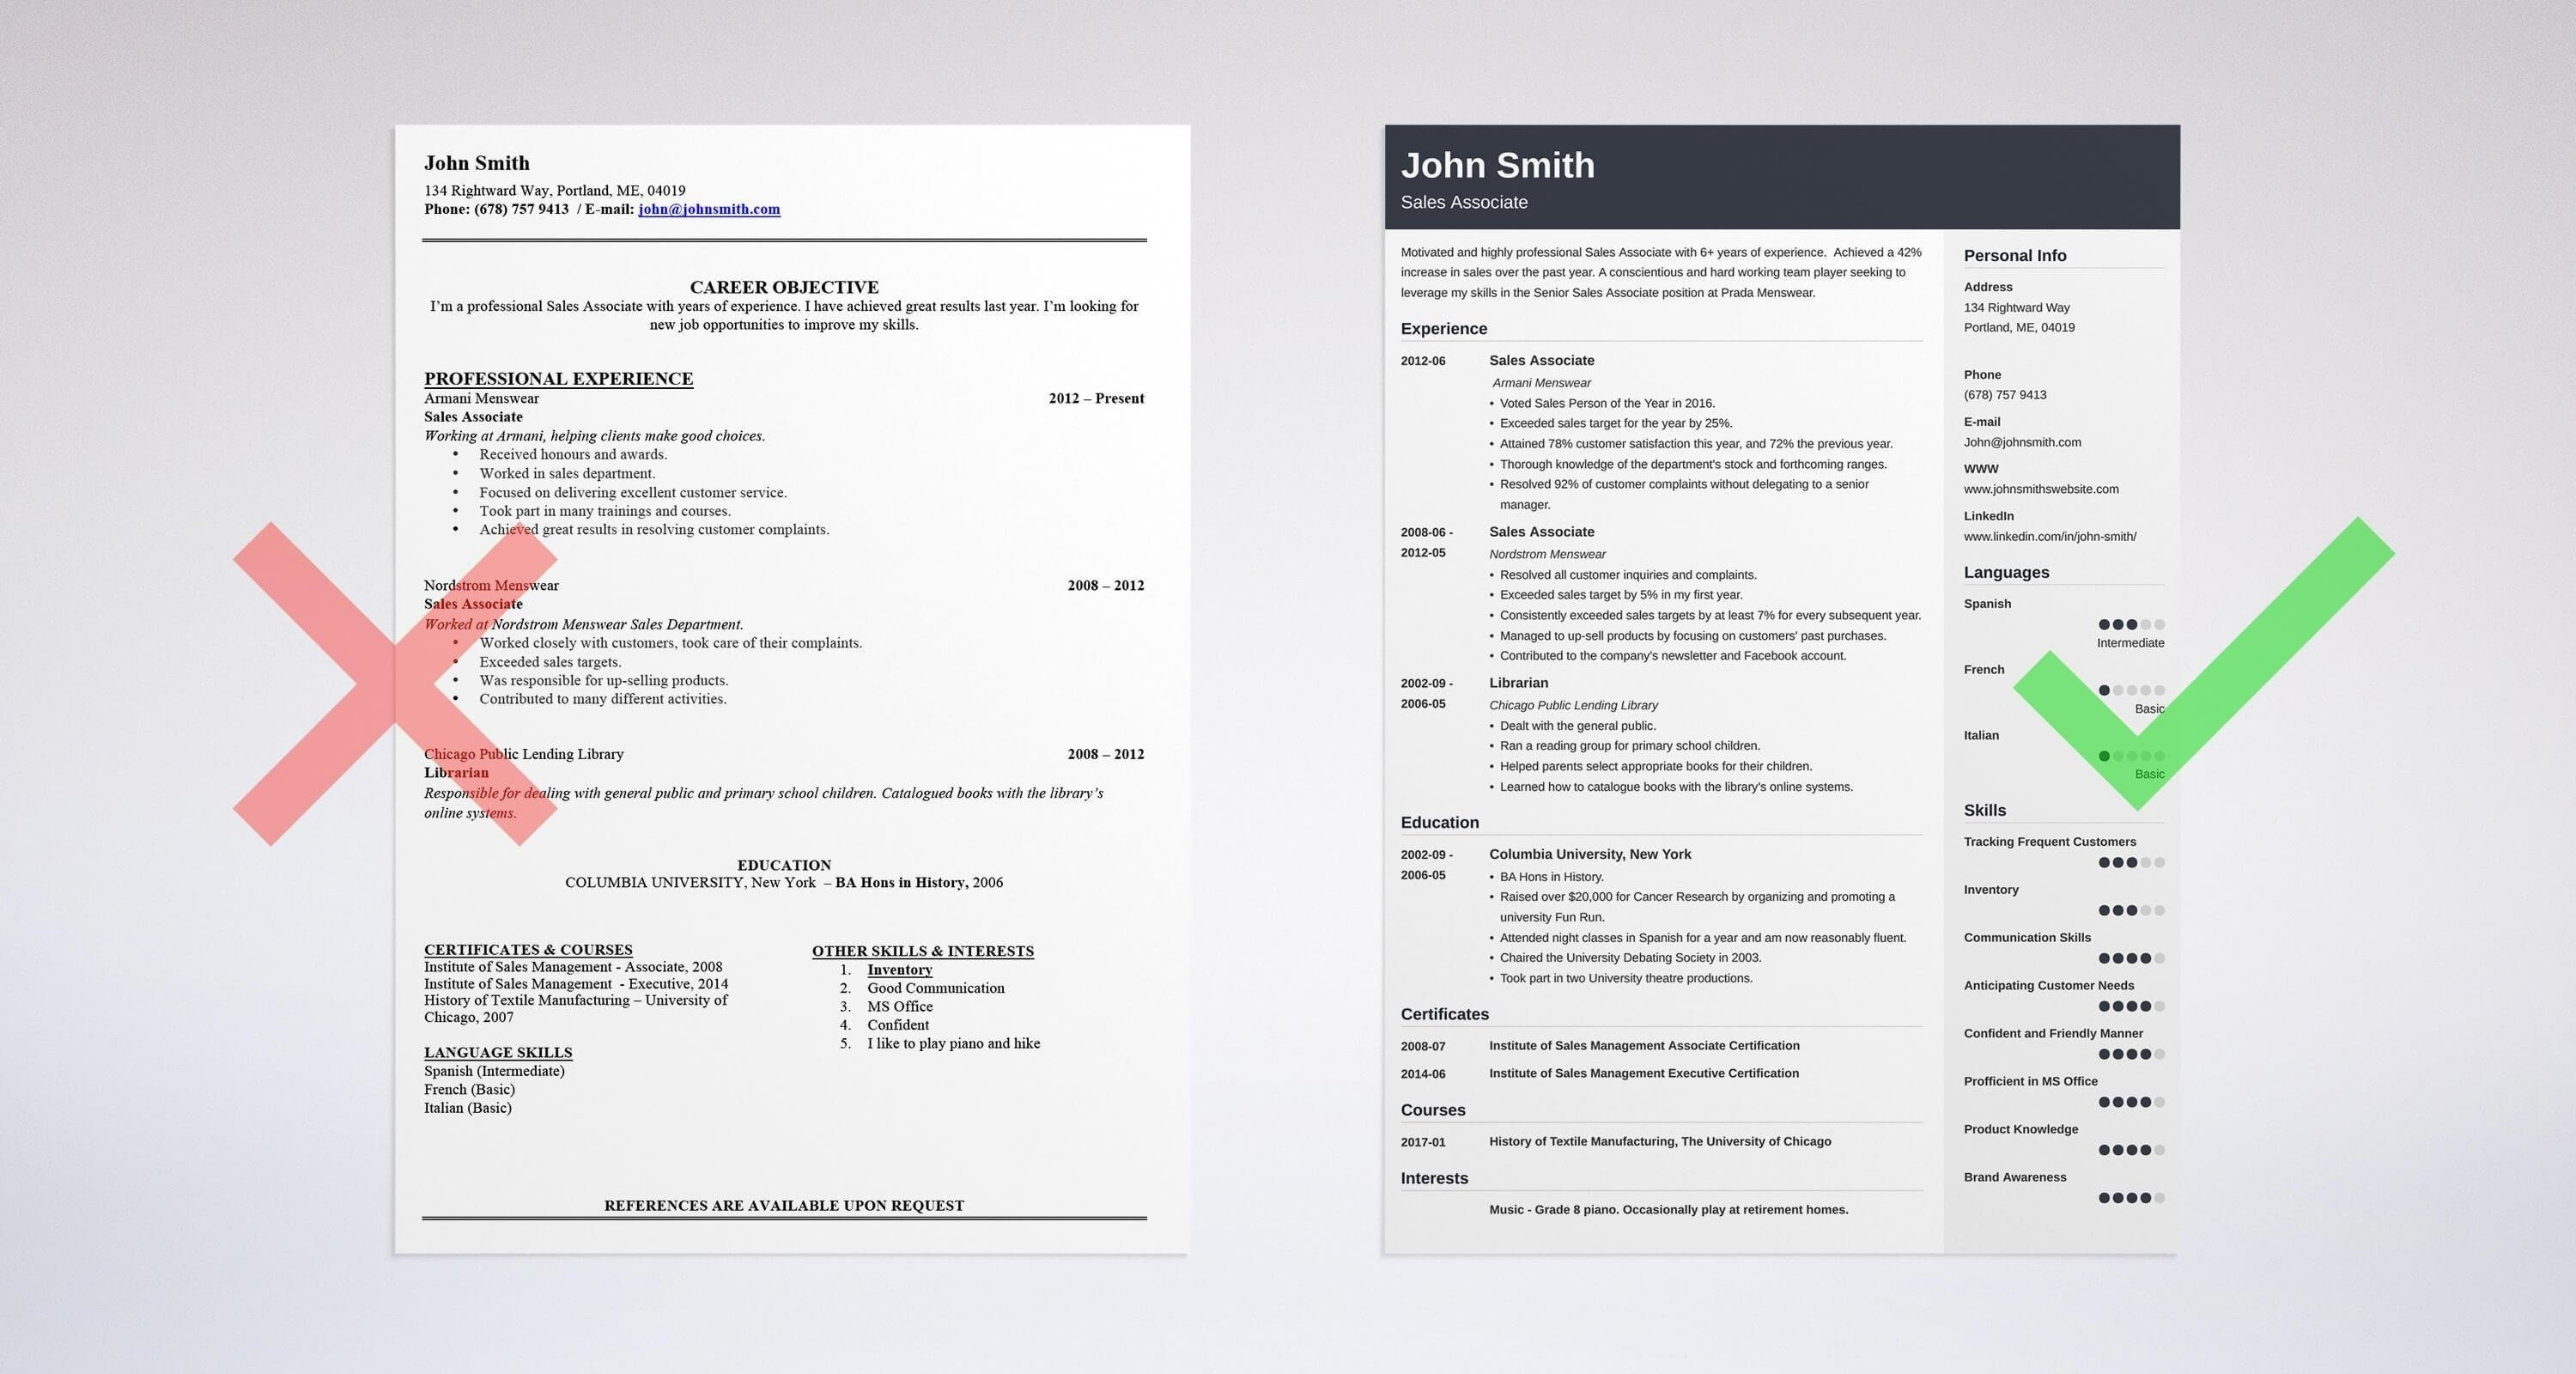 About Me In Resume - Interest Section Resume Examples Elegant Beautiful Grapher Resume